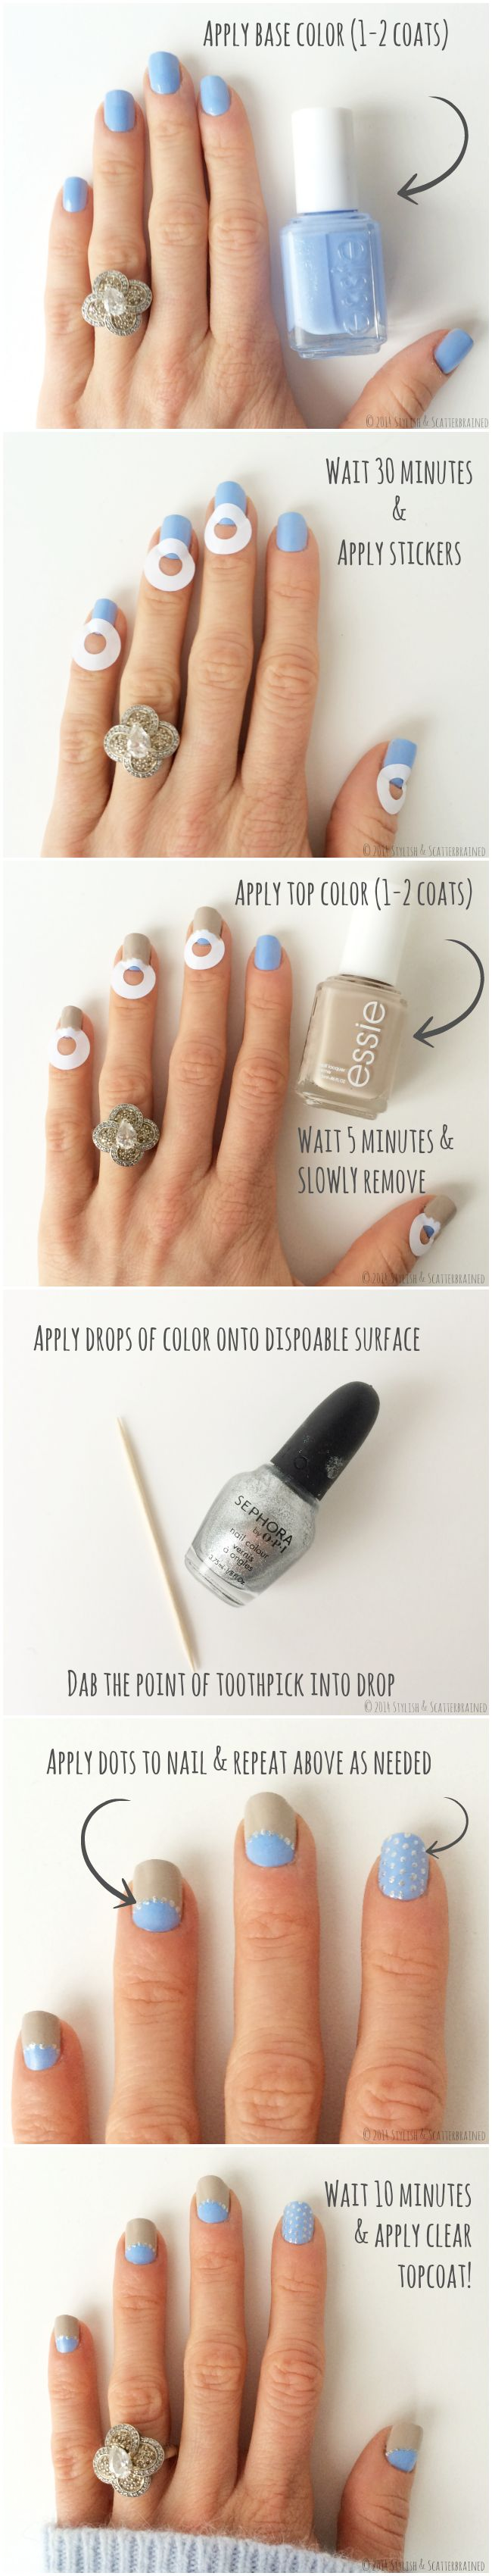 DIY Nail Art Tutorial: Baby Blues